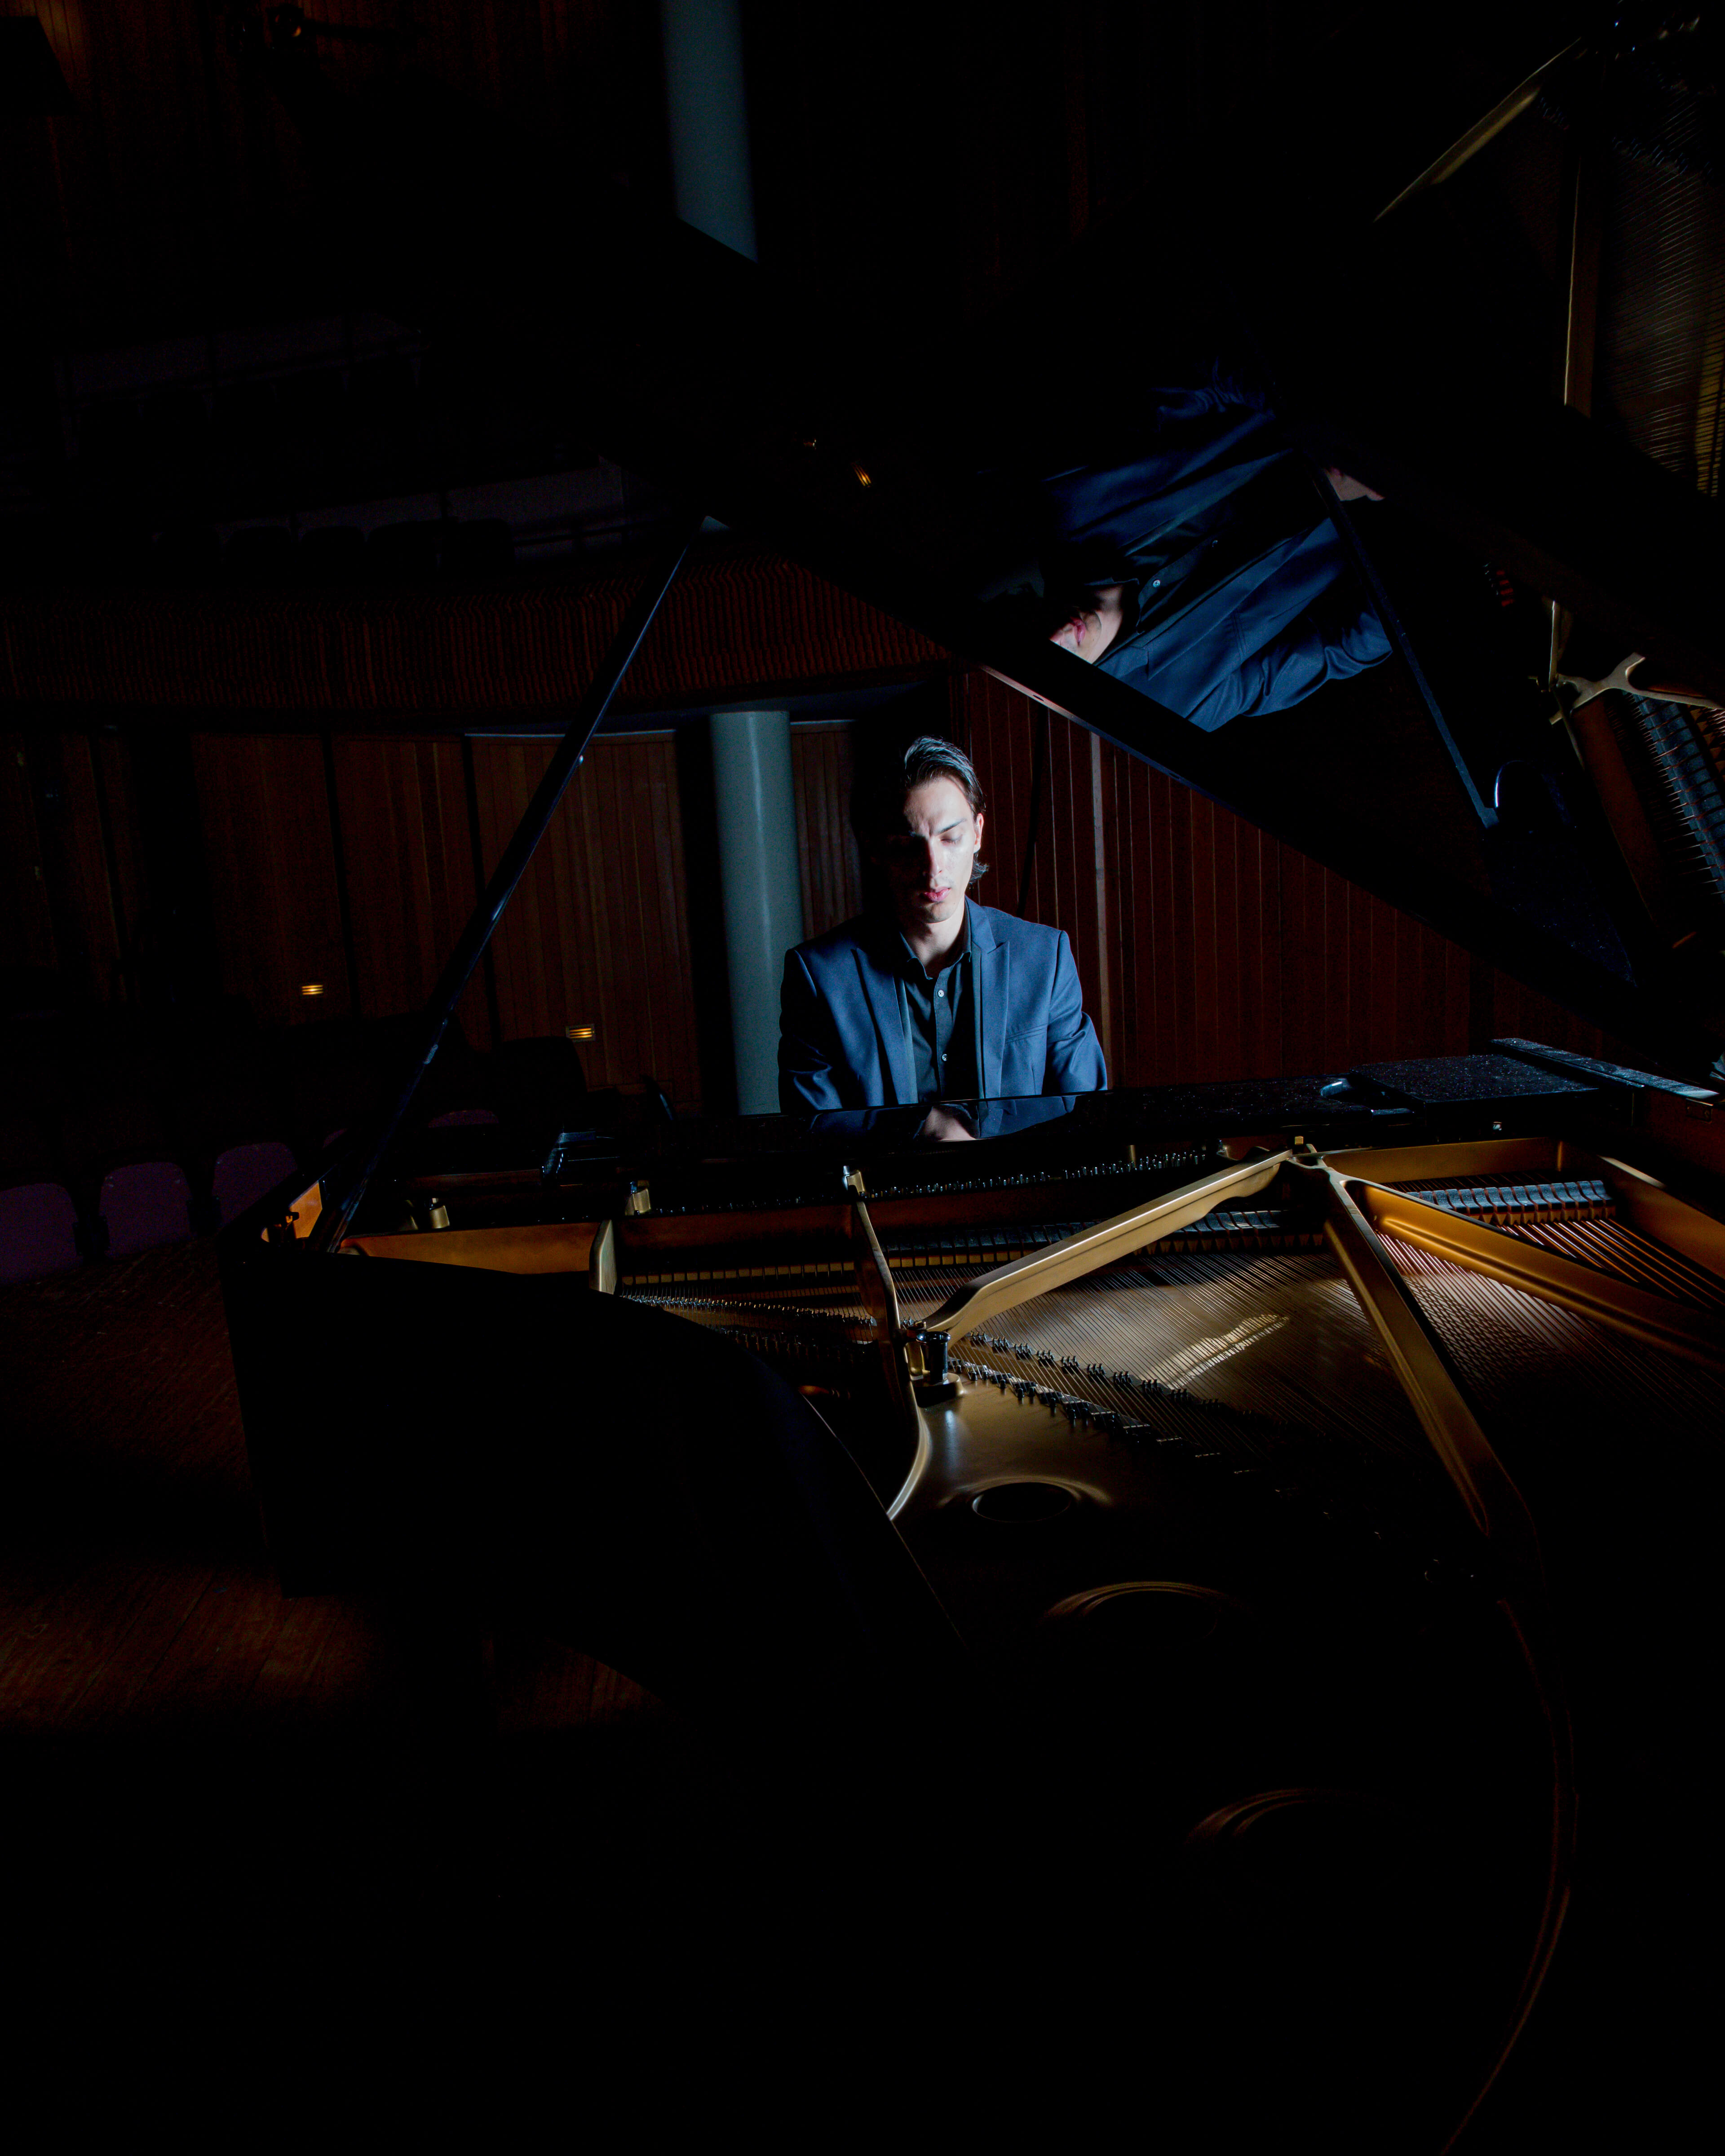 A pianist sitting at a grand, photographed through the lid of the piano